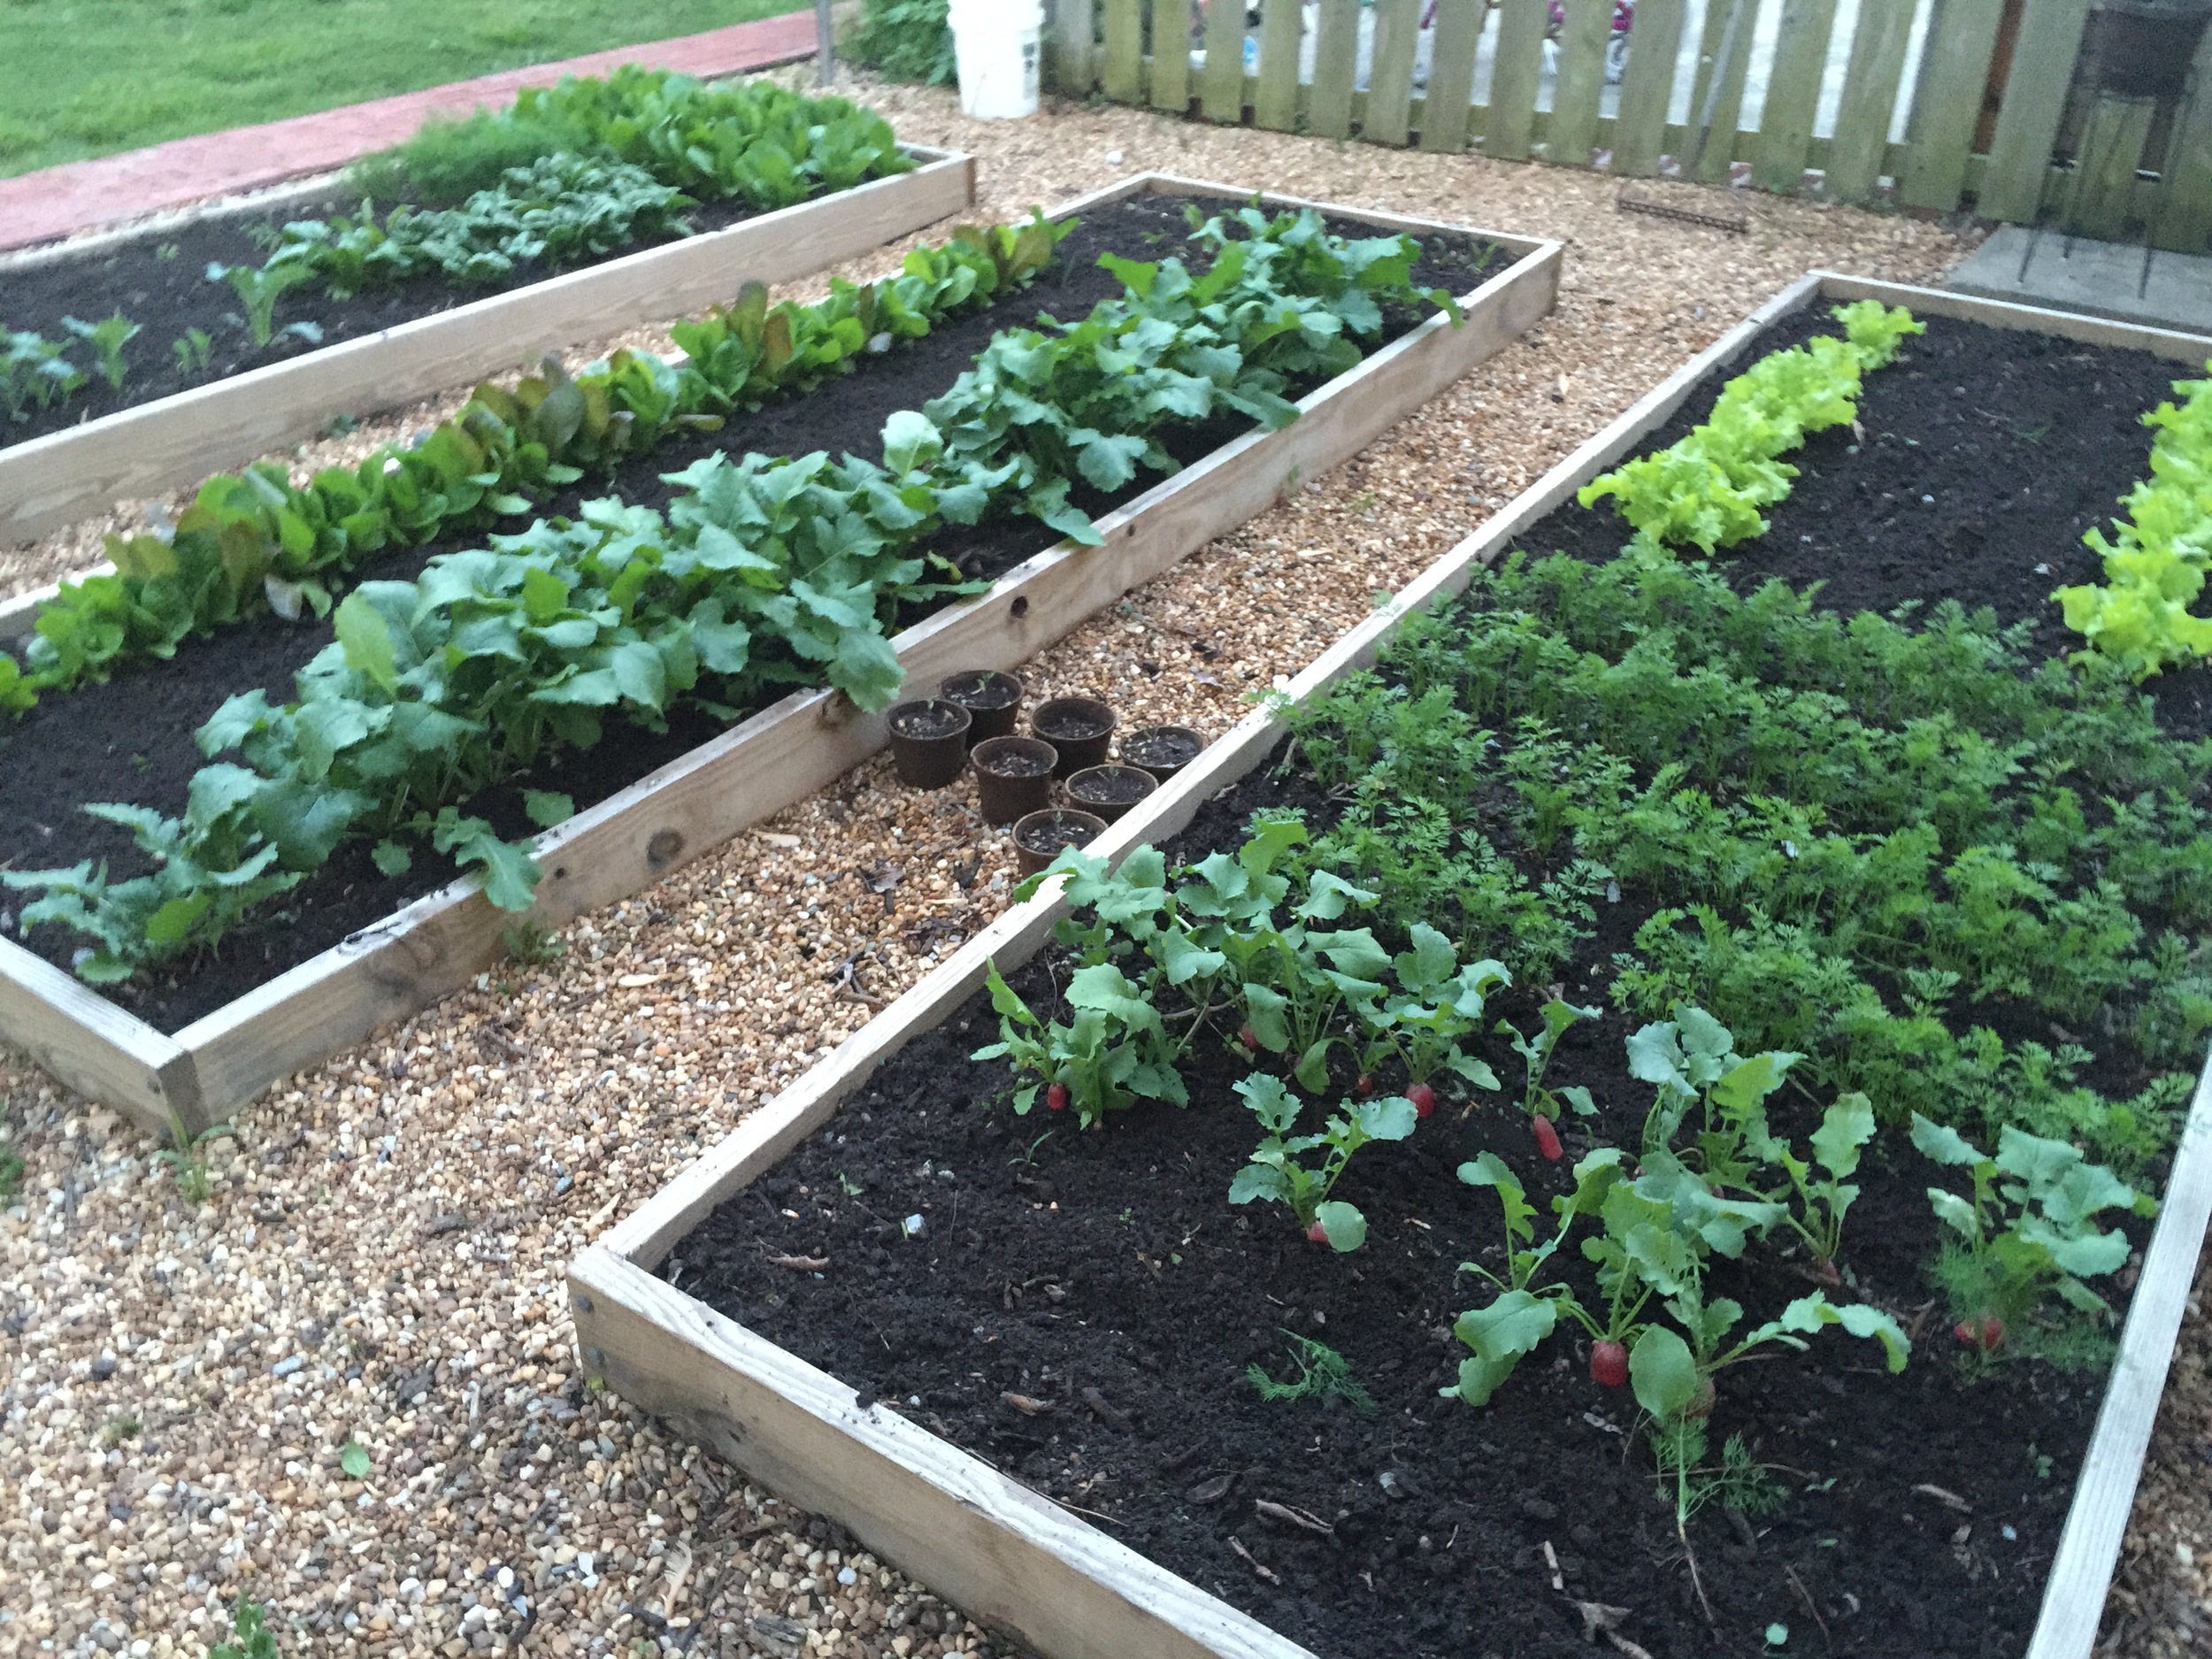 Raised planting beds constructed from 2x8 lumber